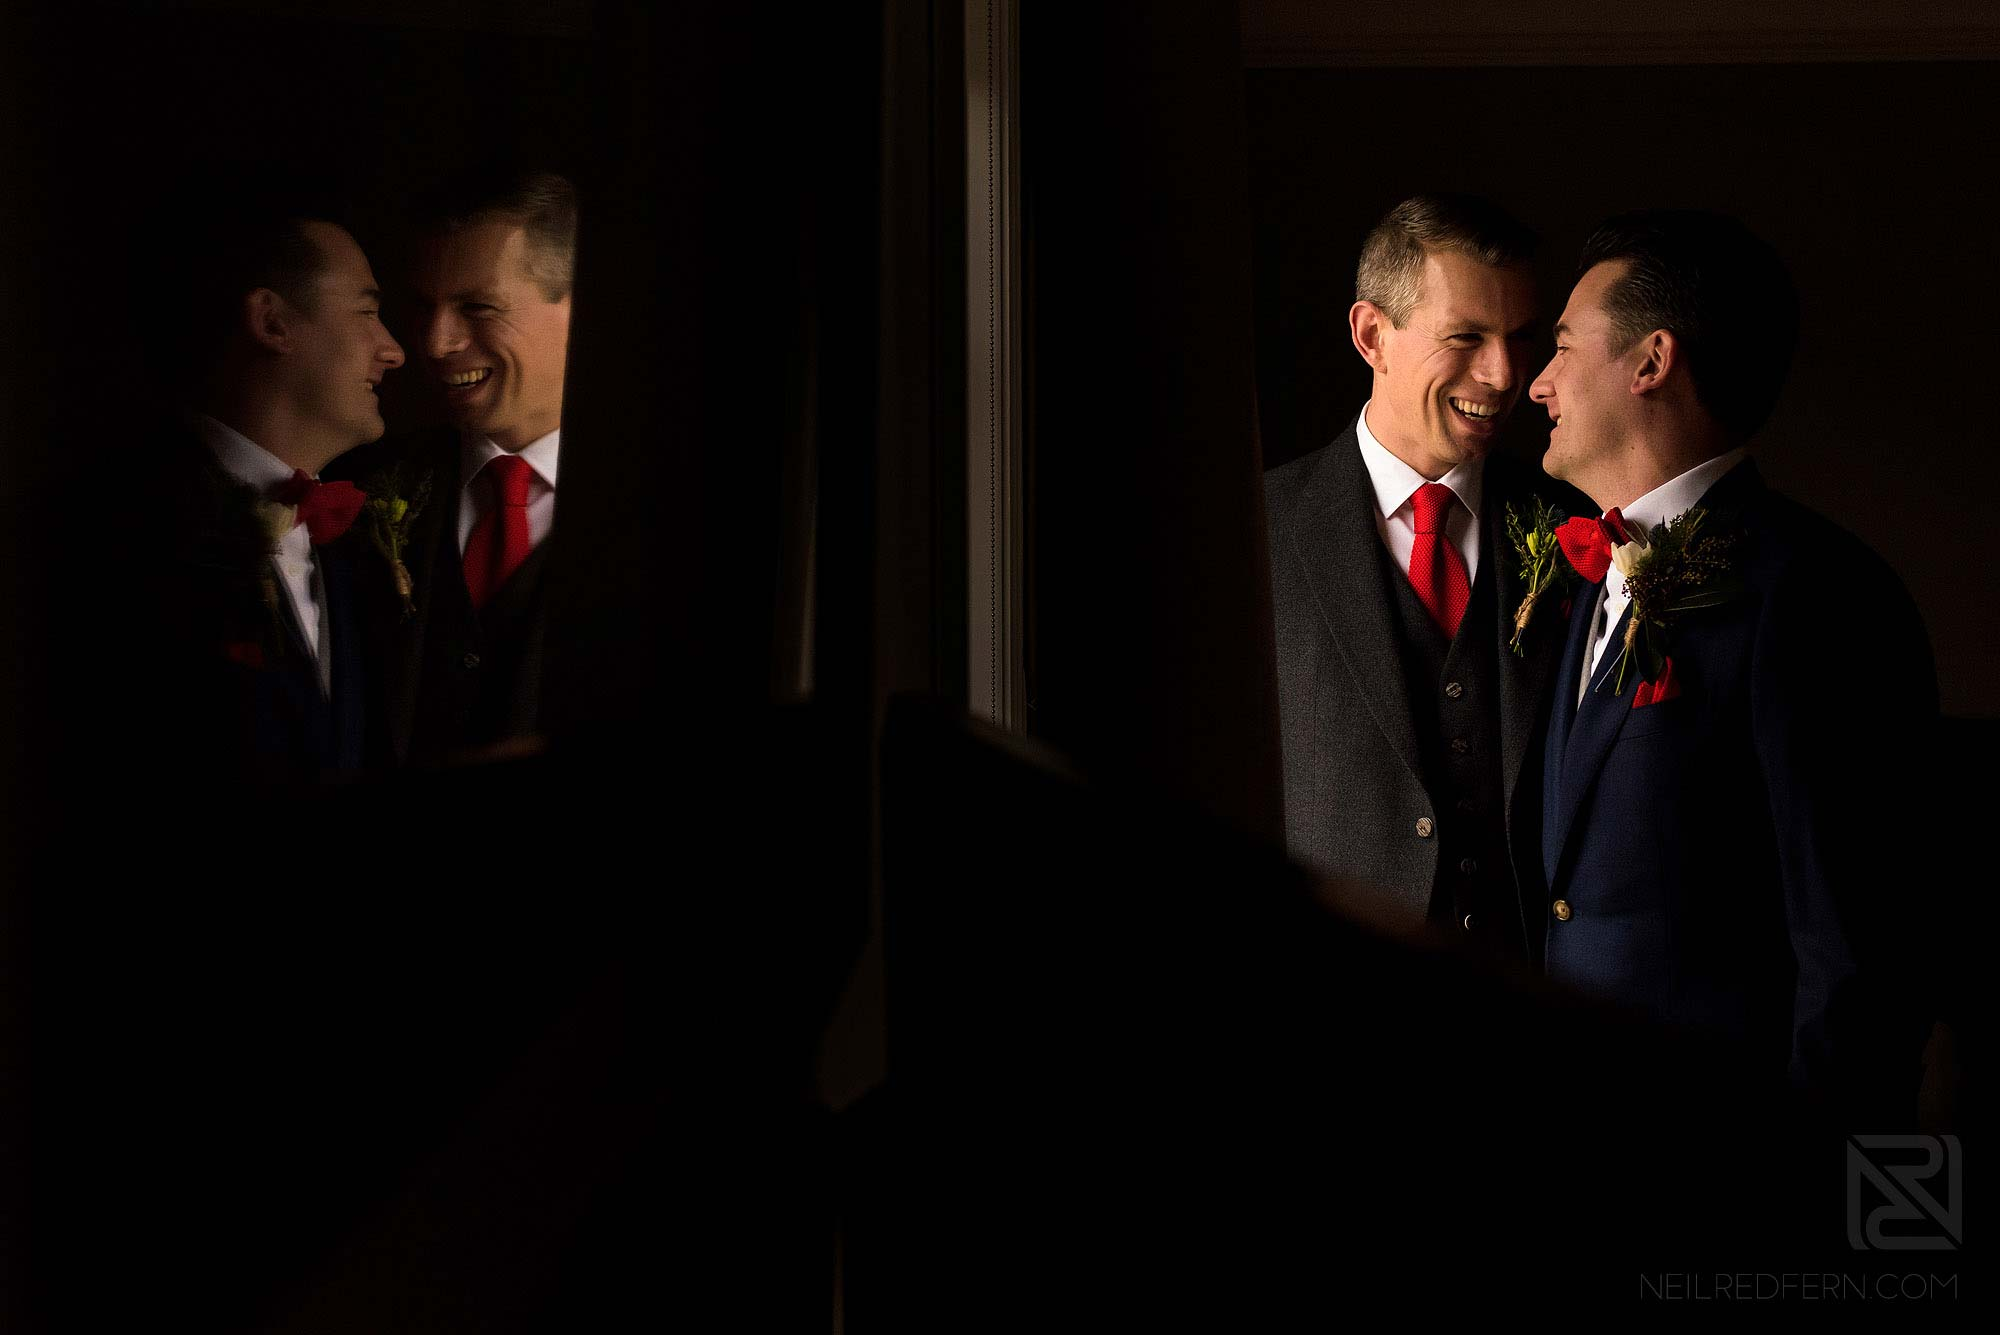 romantic photograph of two grooms at civil partnership wedding